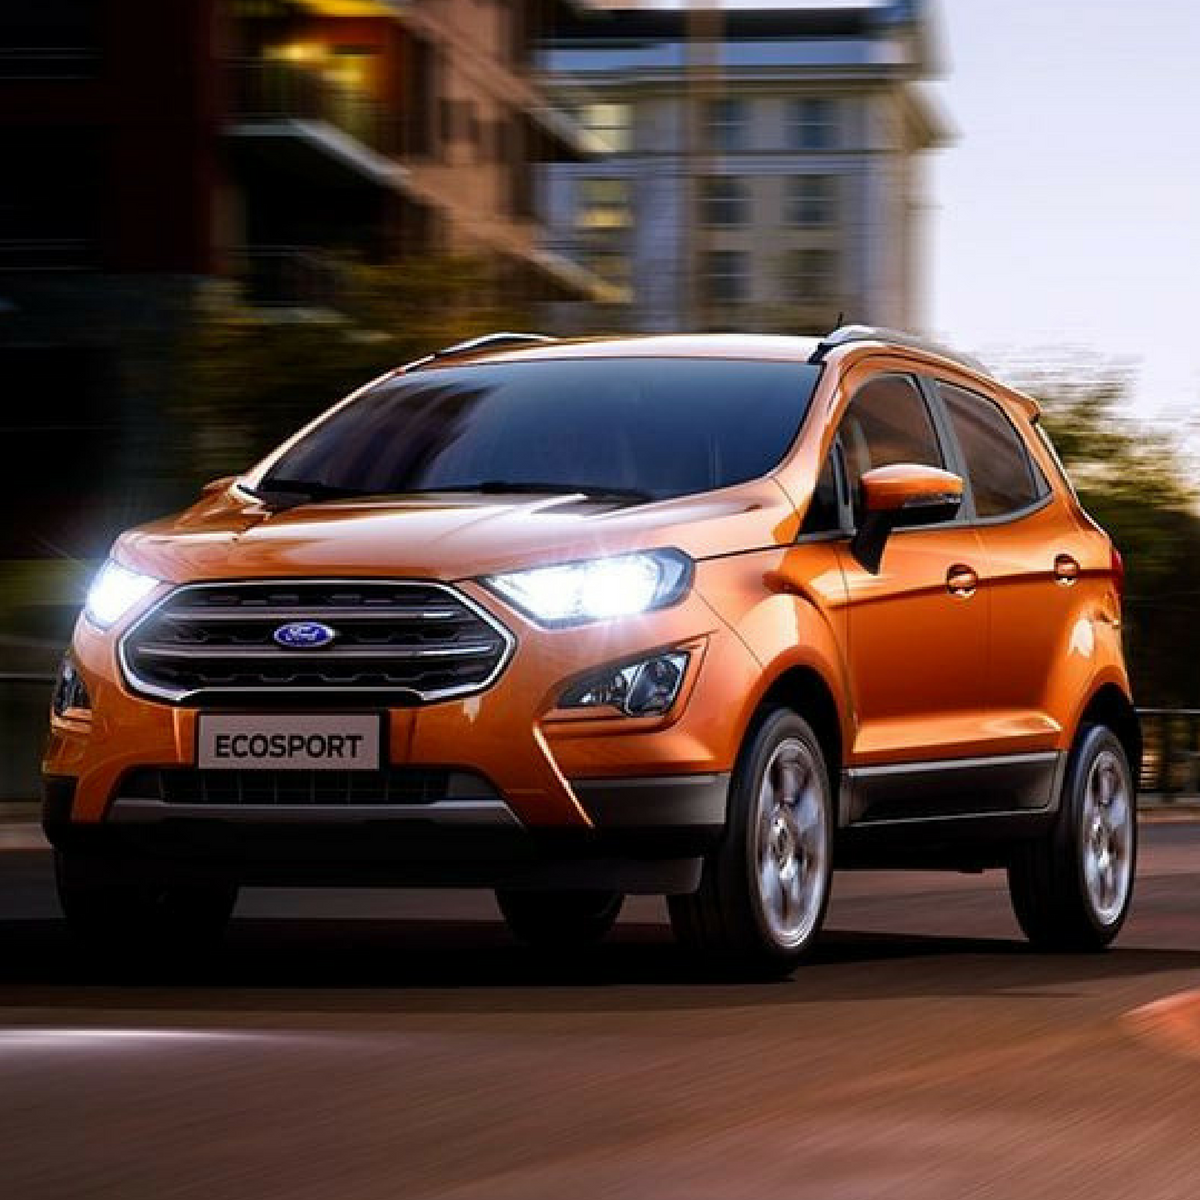 Sportier Ford Ecosport S Sunproof To Introduce This Month Ford